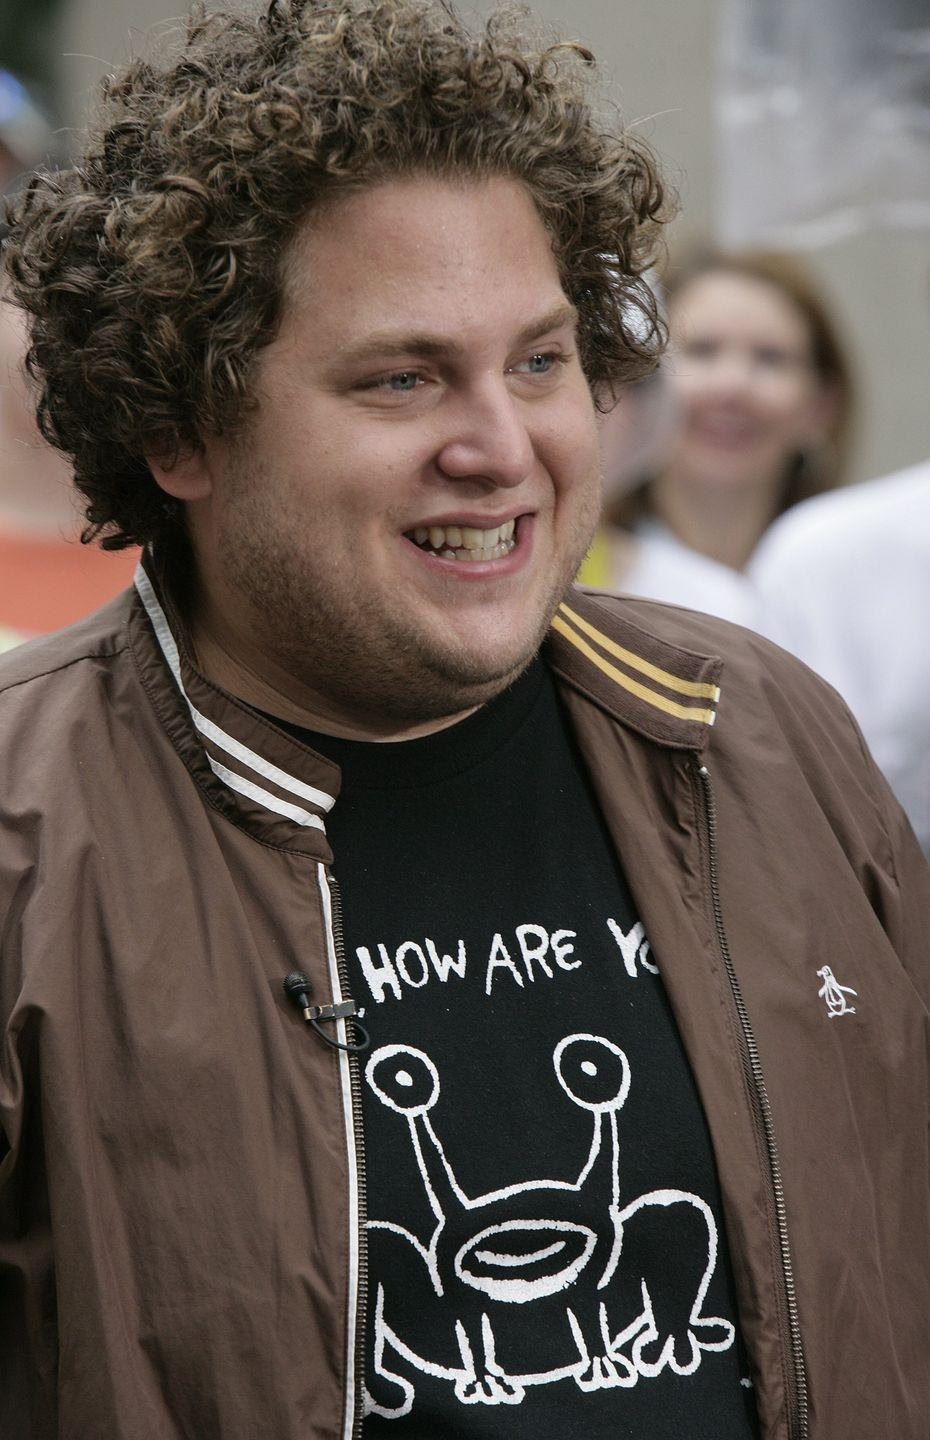 <p>Jonah Hill first made waves in Hollywood around 2007 with his starring role in the comedy <em>Superbad</em>. Hilarious and goofy, Hill spent a few years being seen as nothing more than a comedian who did really great work in stoner movies. </p>